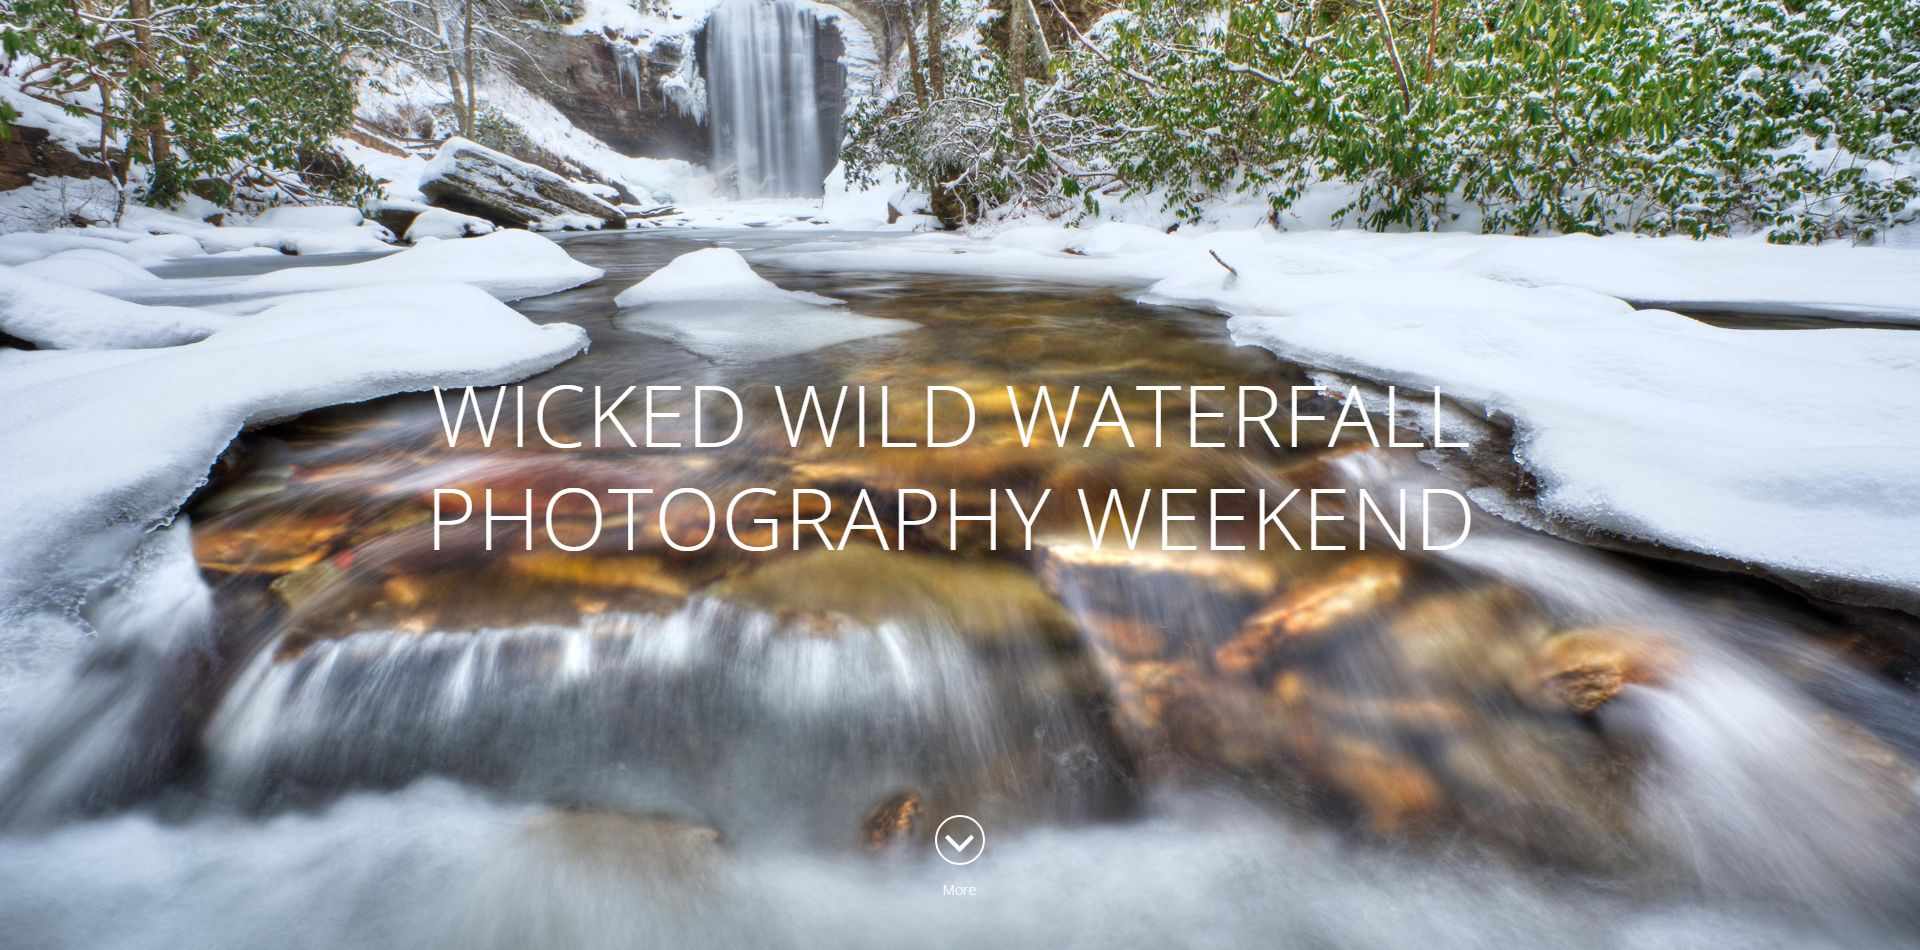 Home Page for Waterfall Photography Weekend